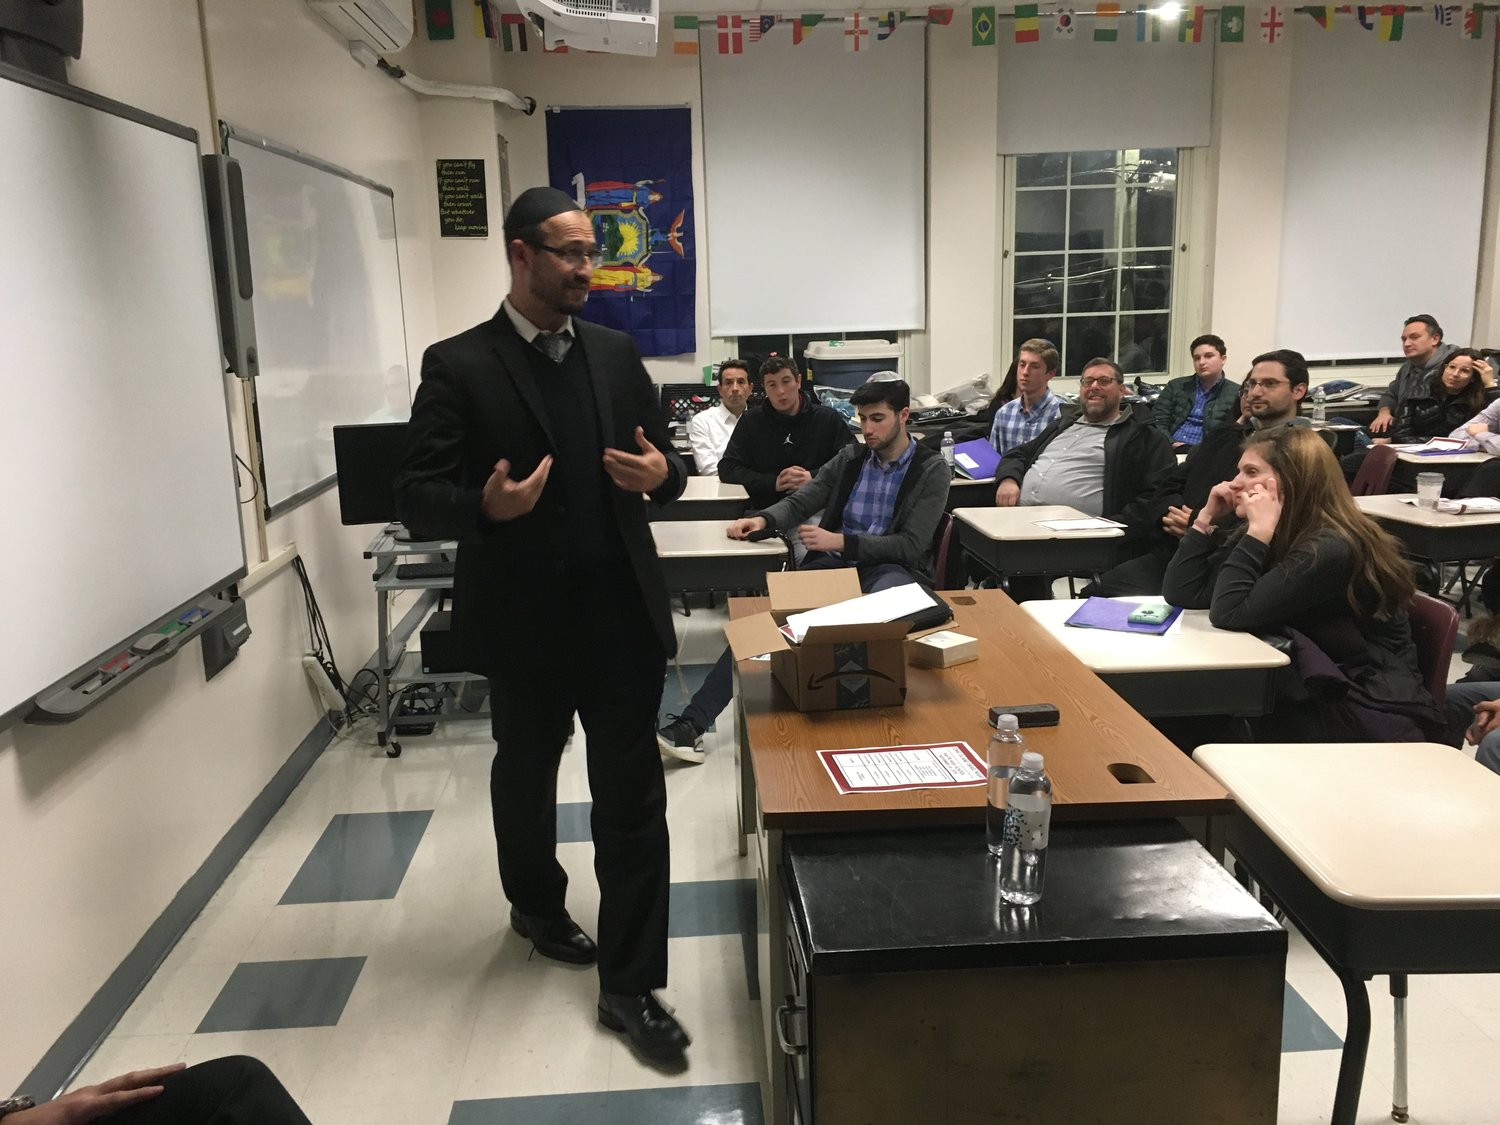 Avi Schneider, Assistant principal of the Jerusalem-based yeshiva Torat Shraga, spoke to parents and students about the school at the Long Island Israel night hosted by HAFTR High School last month.